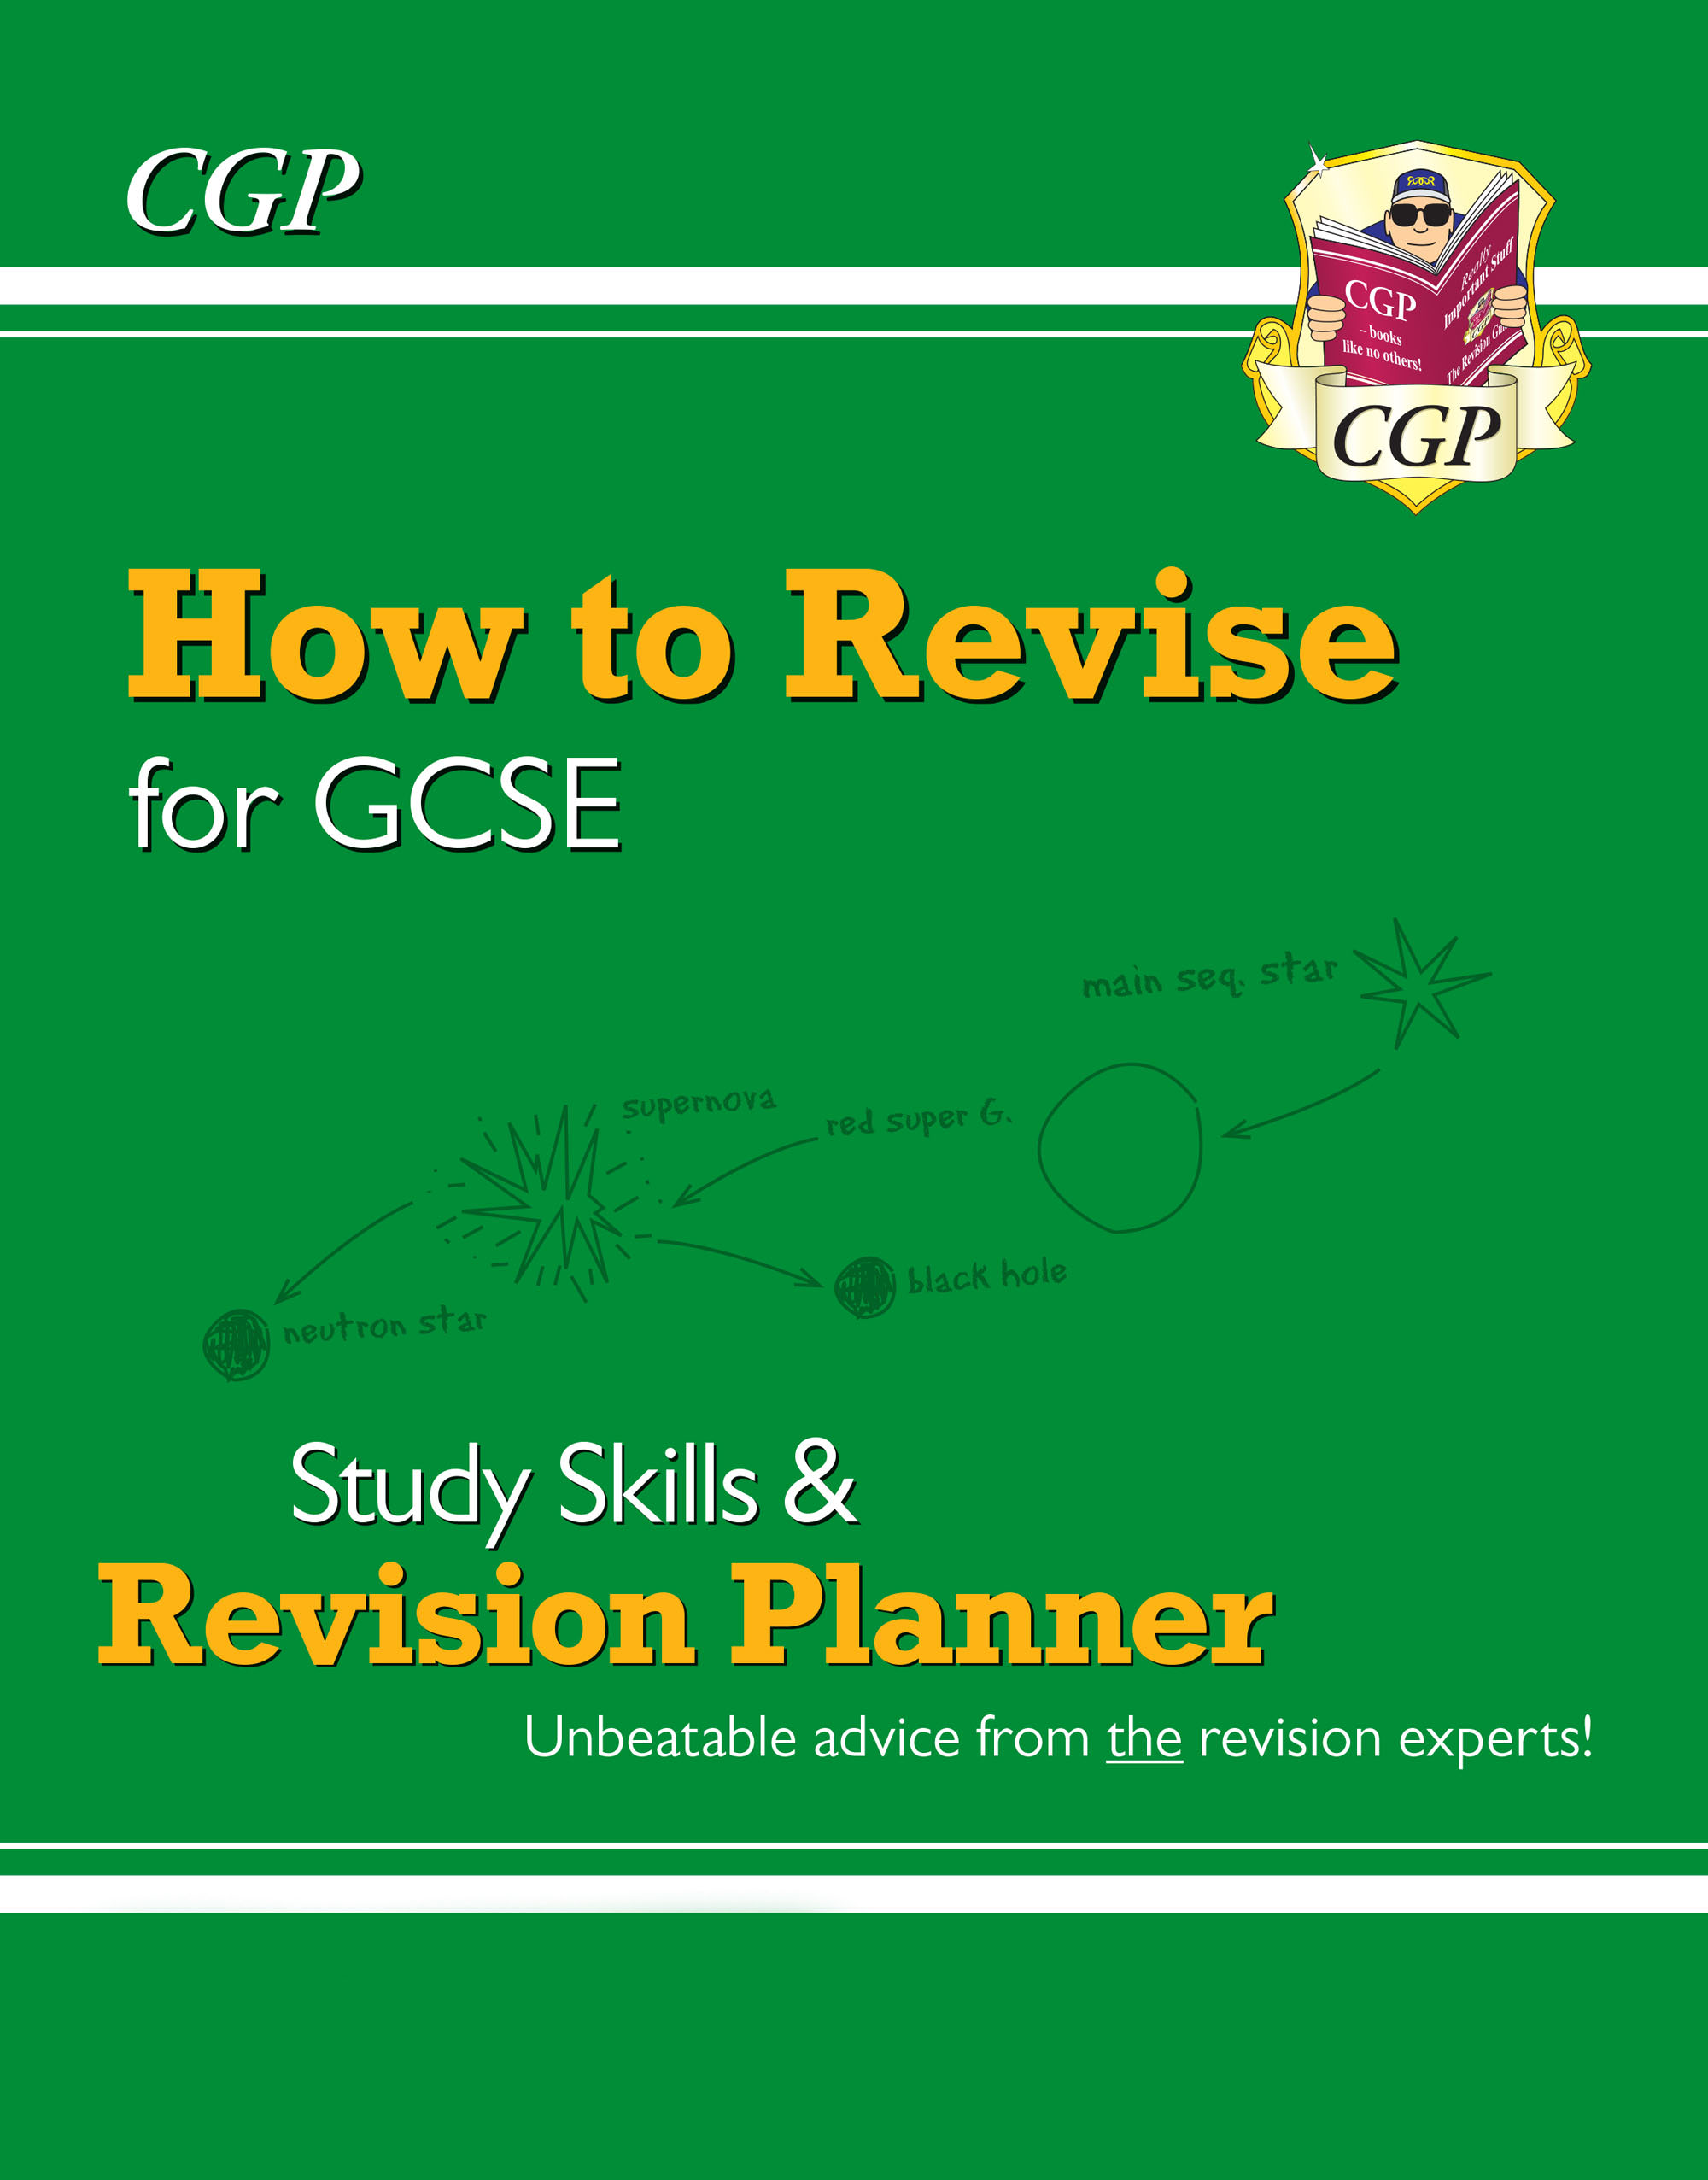 XHR41D - How to Revise for GCSE: Study Skills & Planner (Digital Edition)